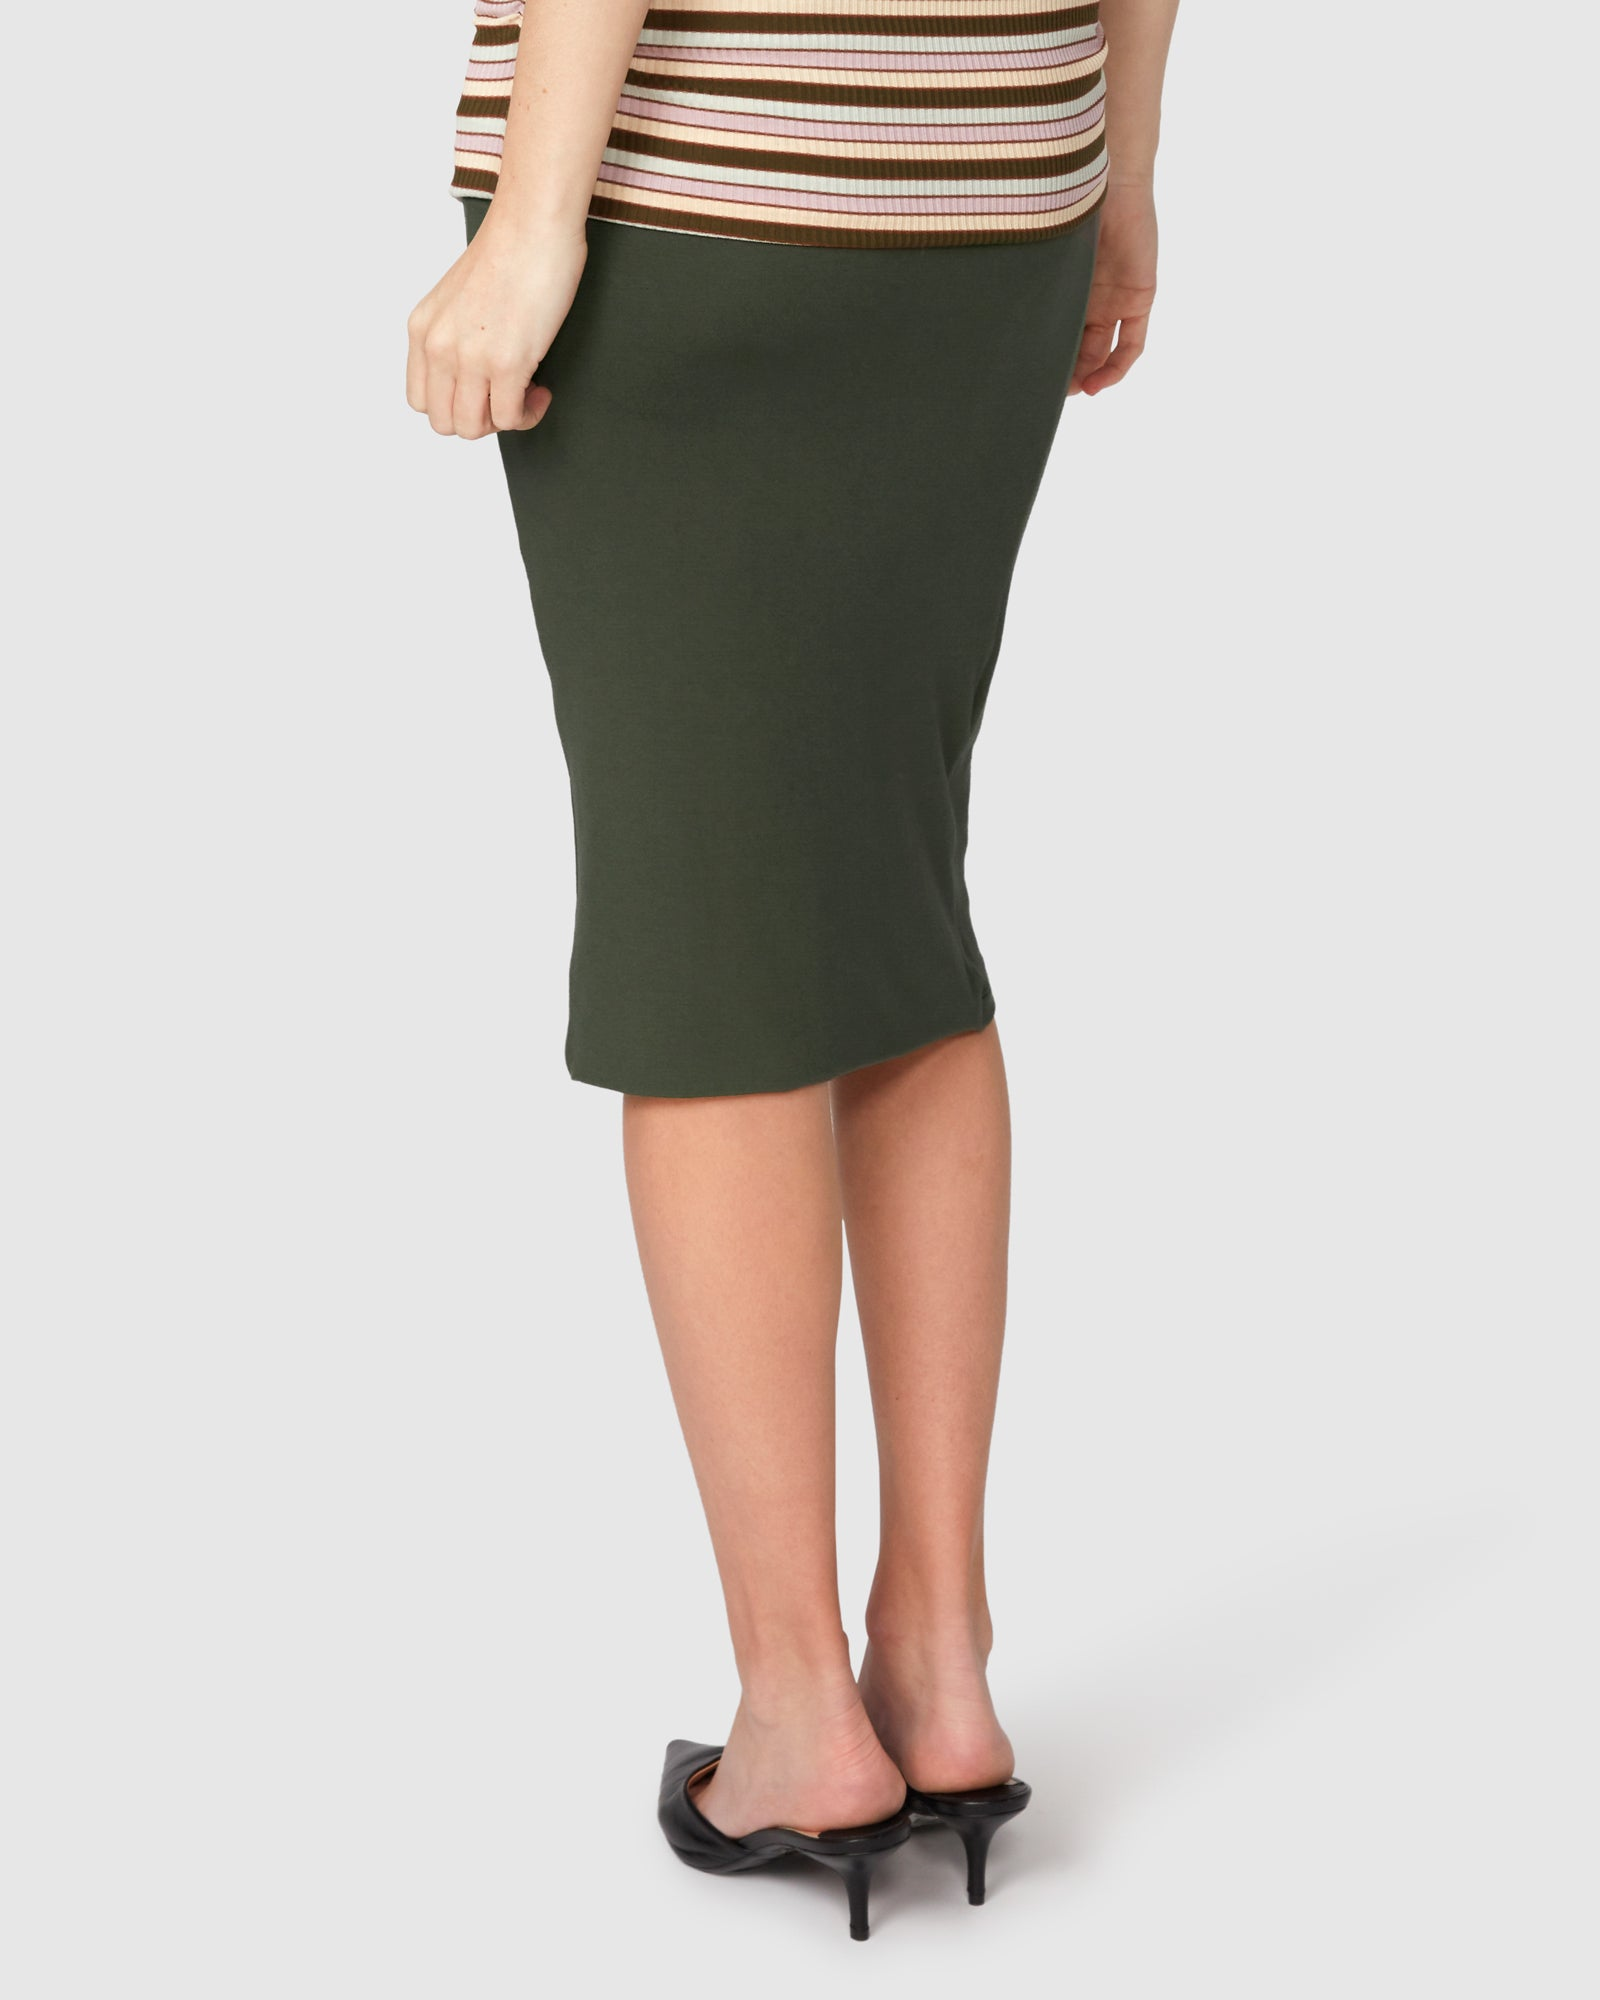 Harley Cross Hem Skirt